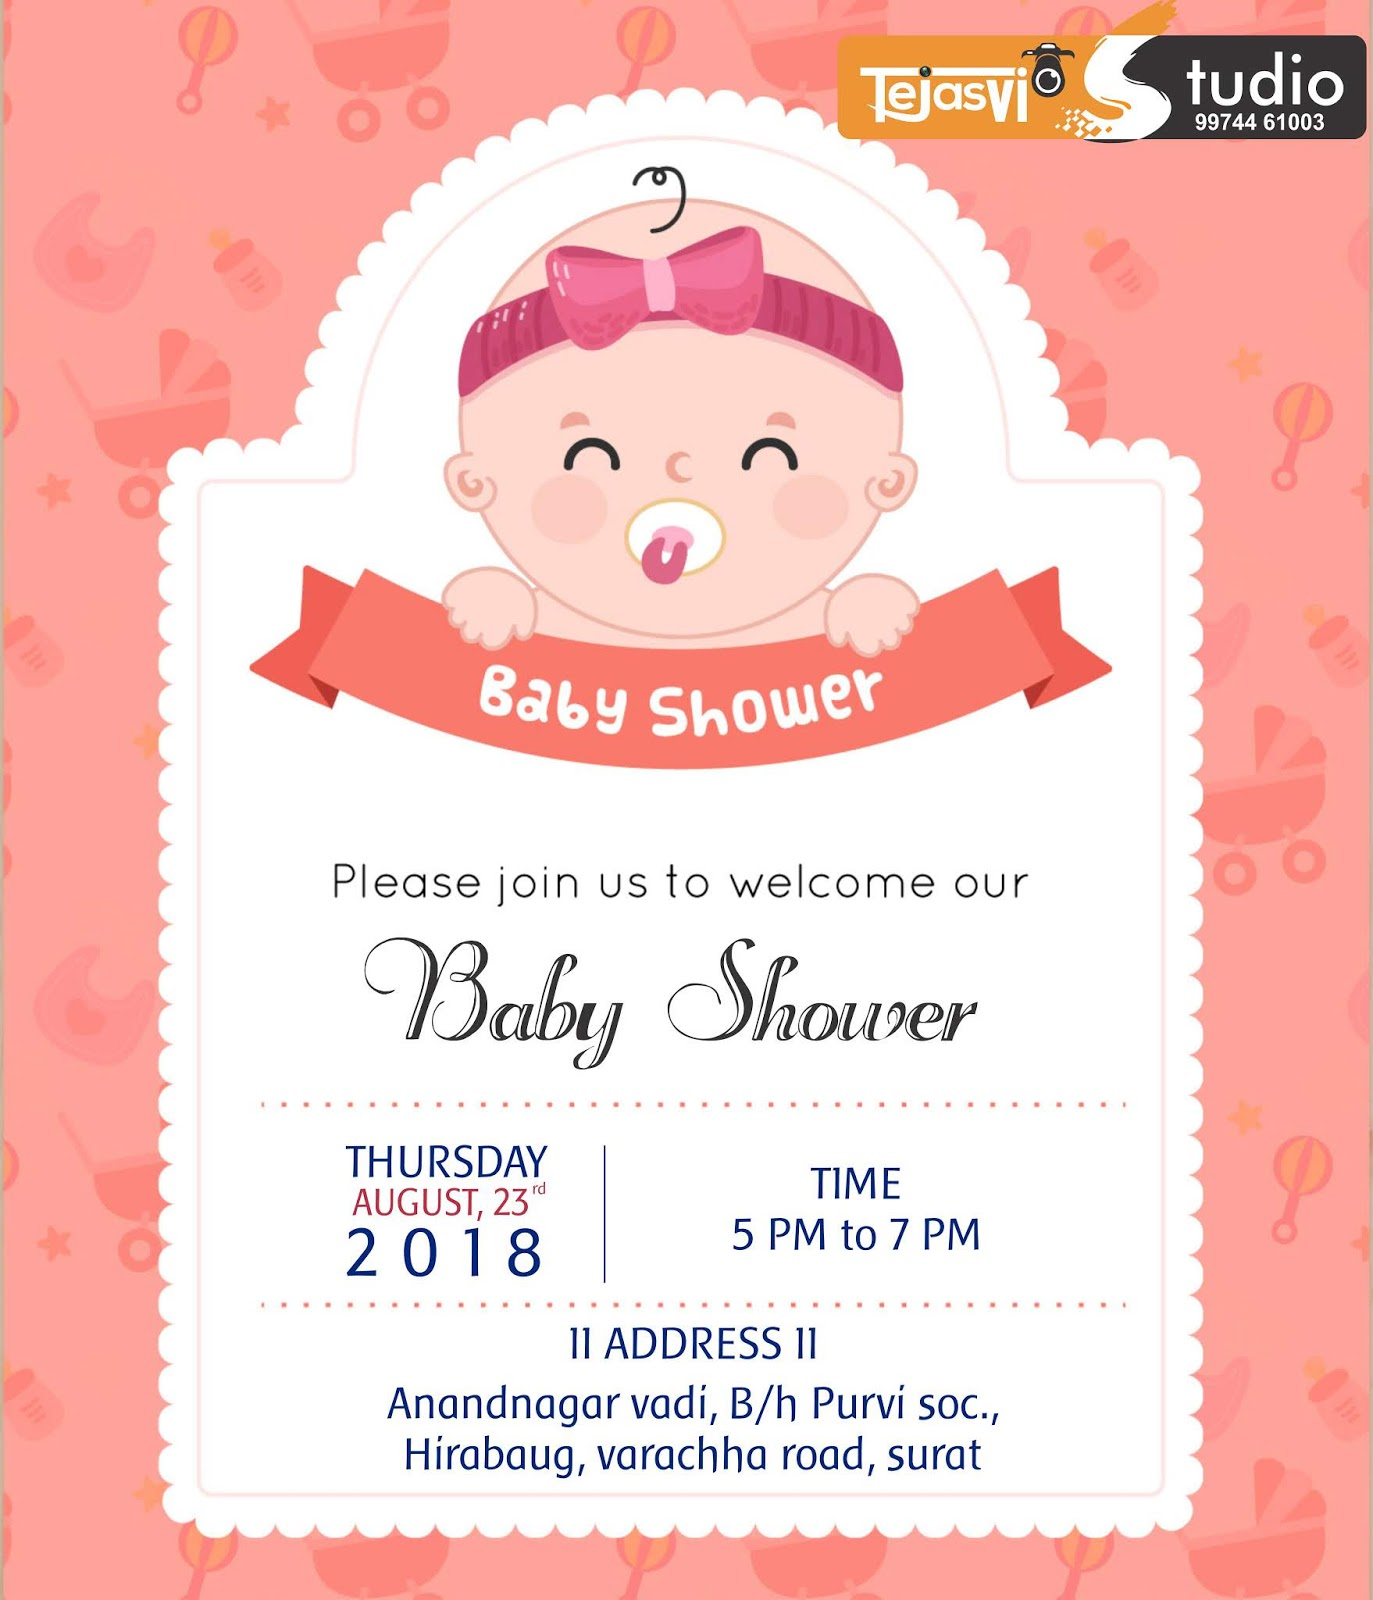 Baby shower invitation cards in gujarati || Tejasvi Graphics & Studio